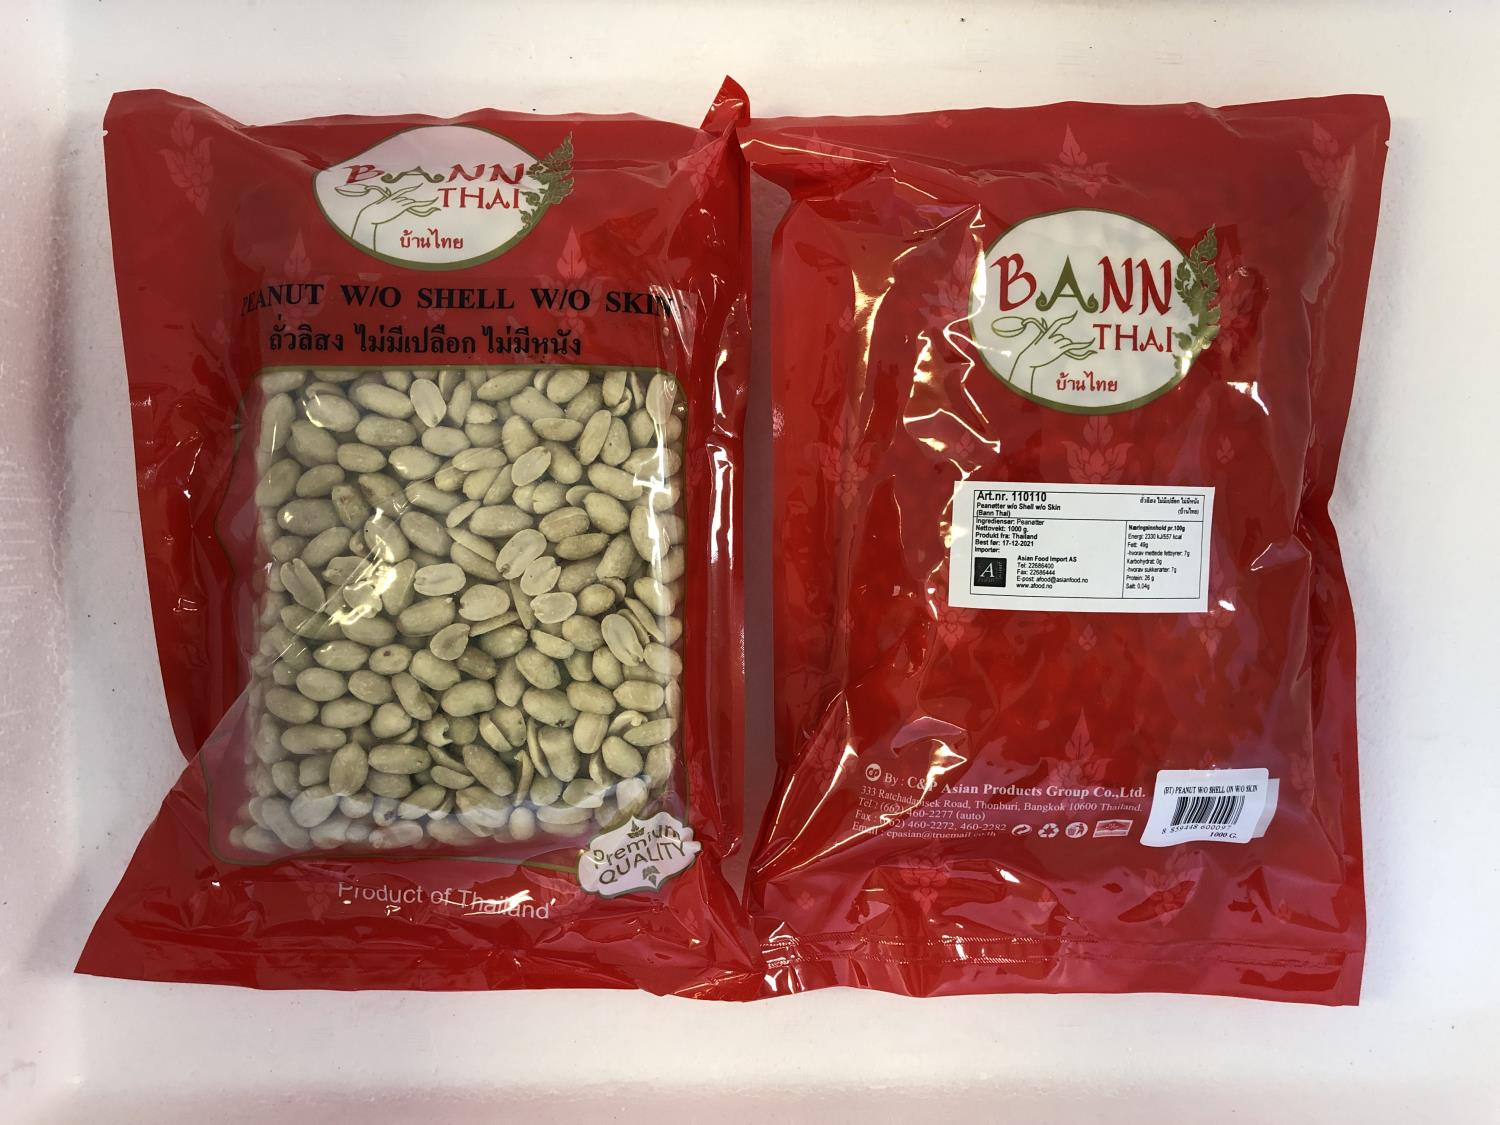 """BANN THAI Peanuts without Shell and Skin 1kg """""""""""""""